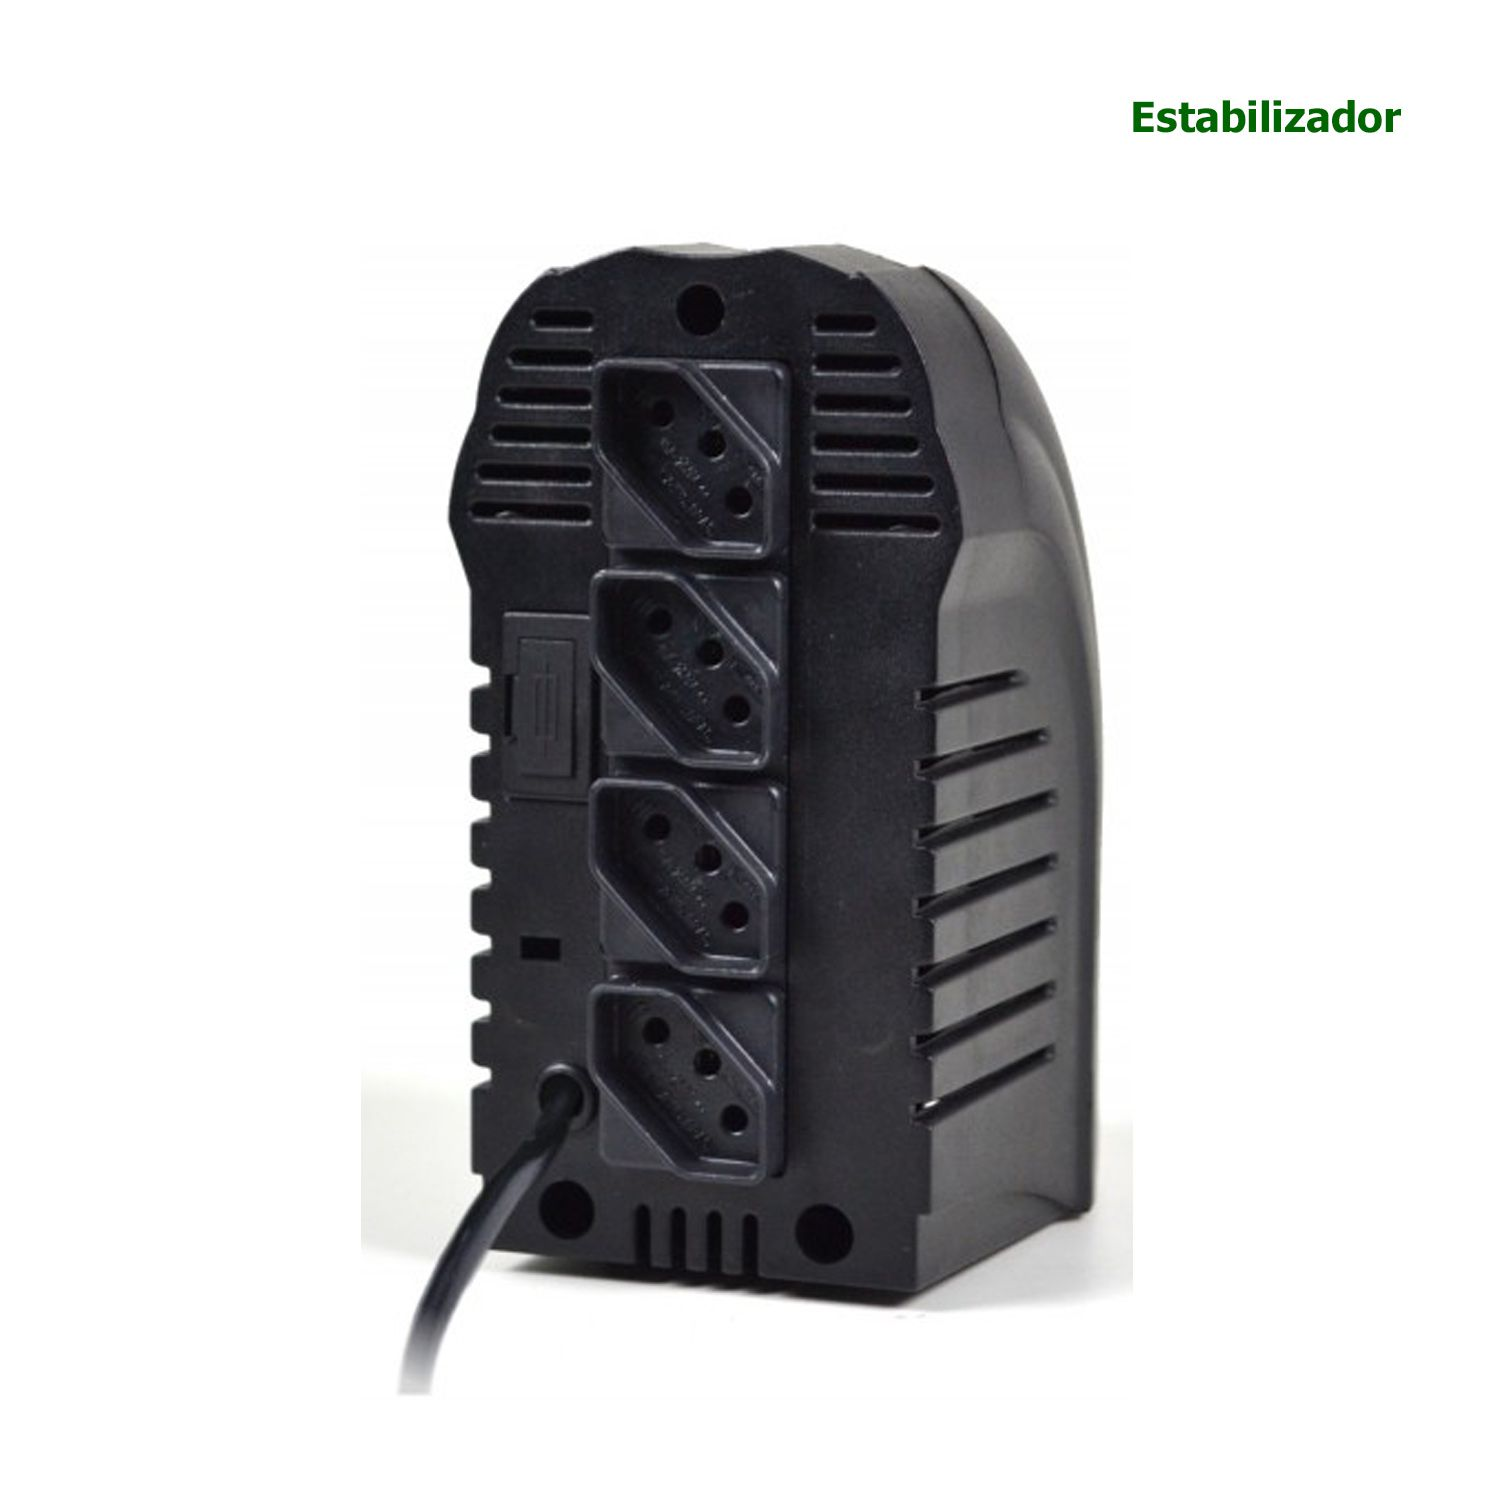 Estabilizador TS SHARA 4 Tomadas Powerest 500VA Bivolt/115V - 9016